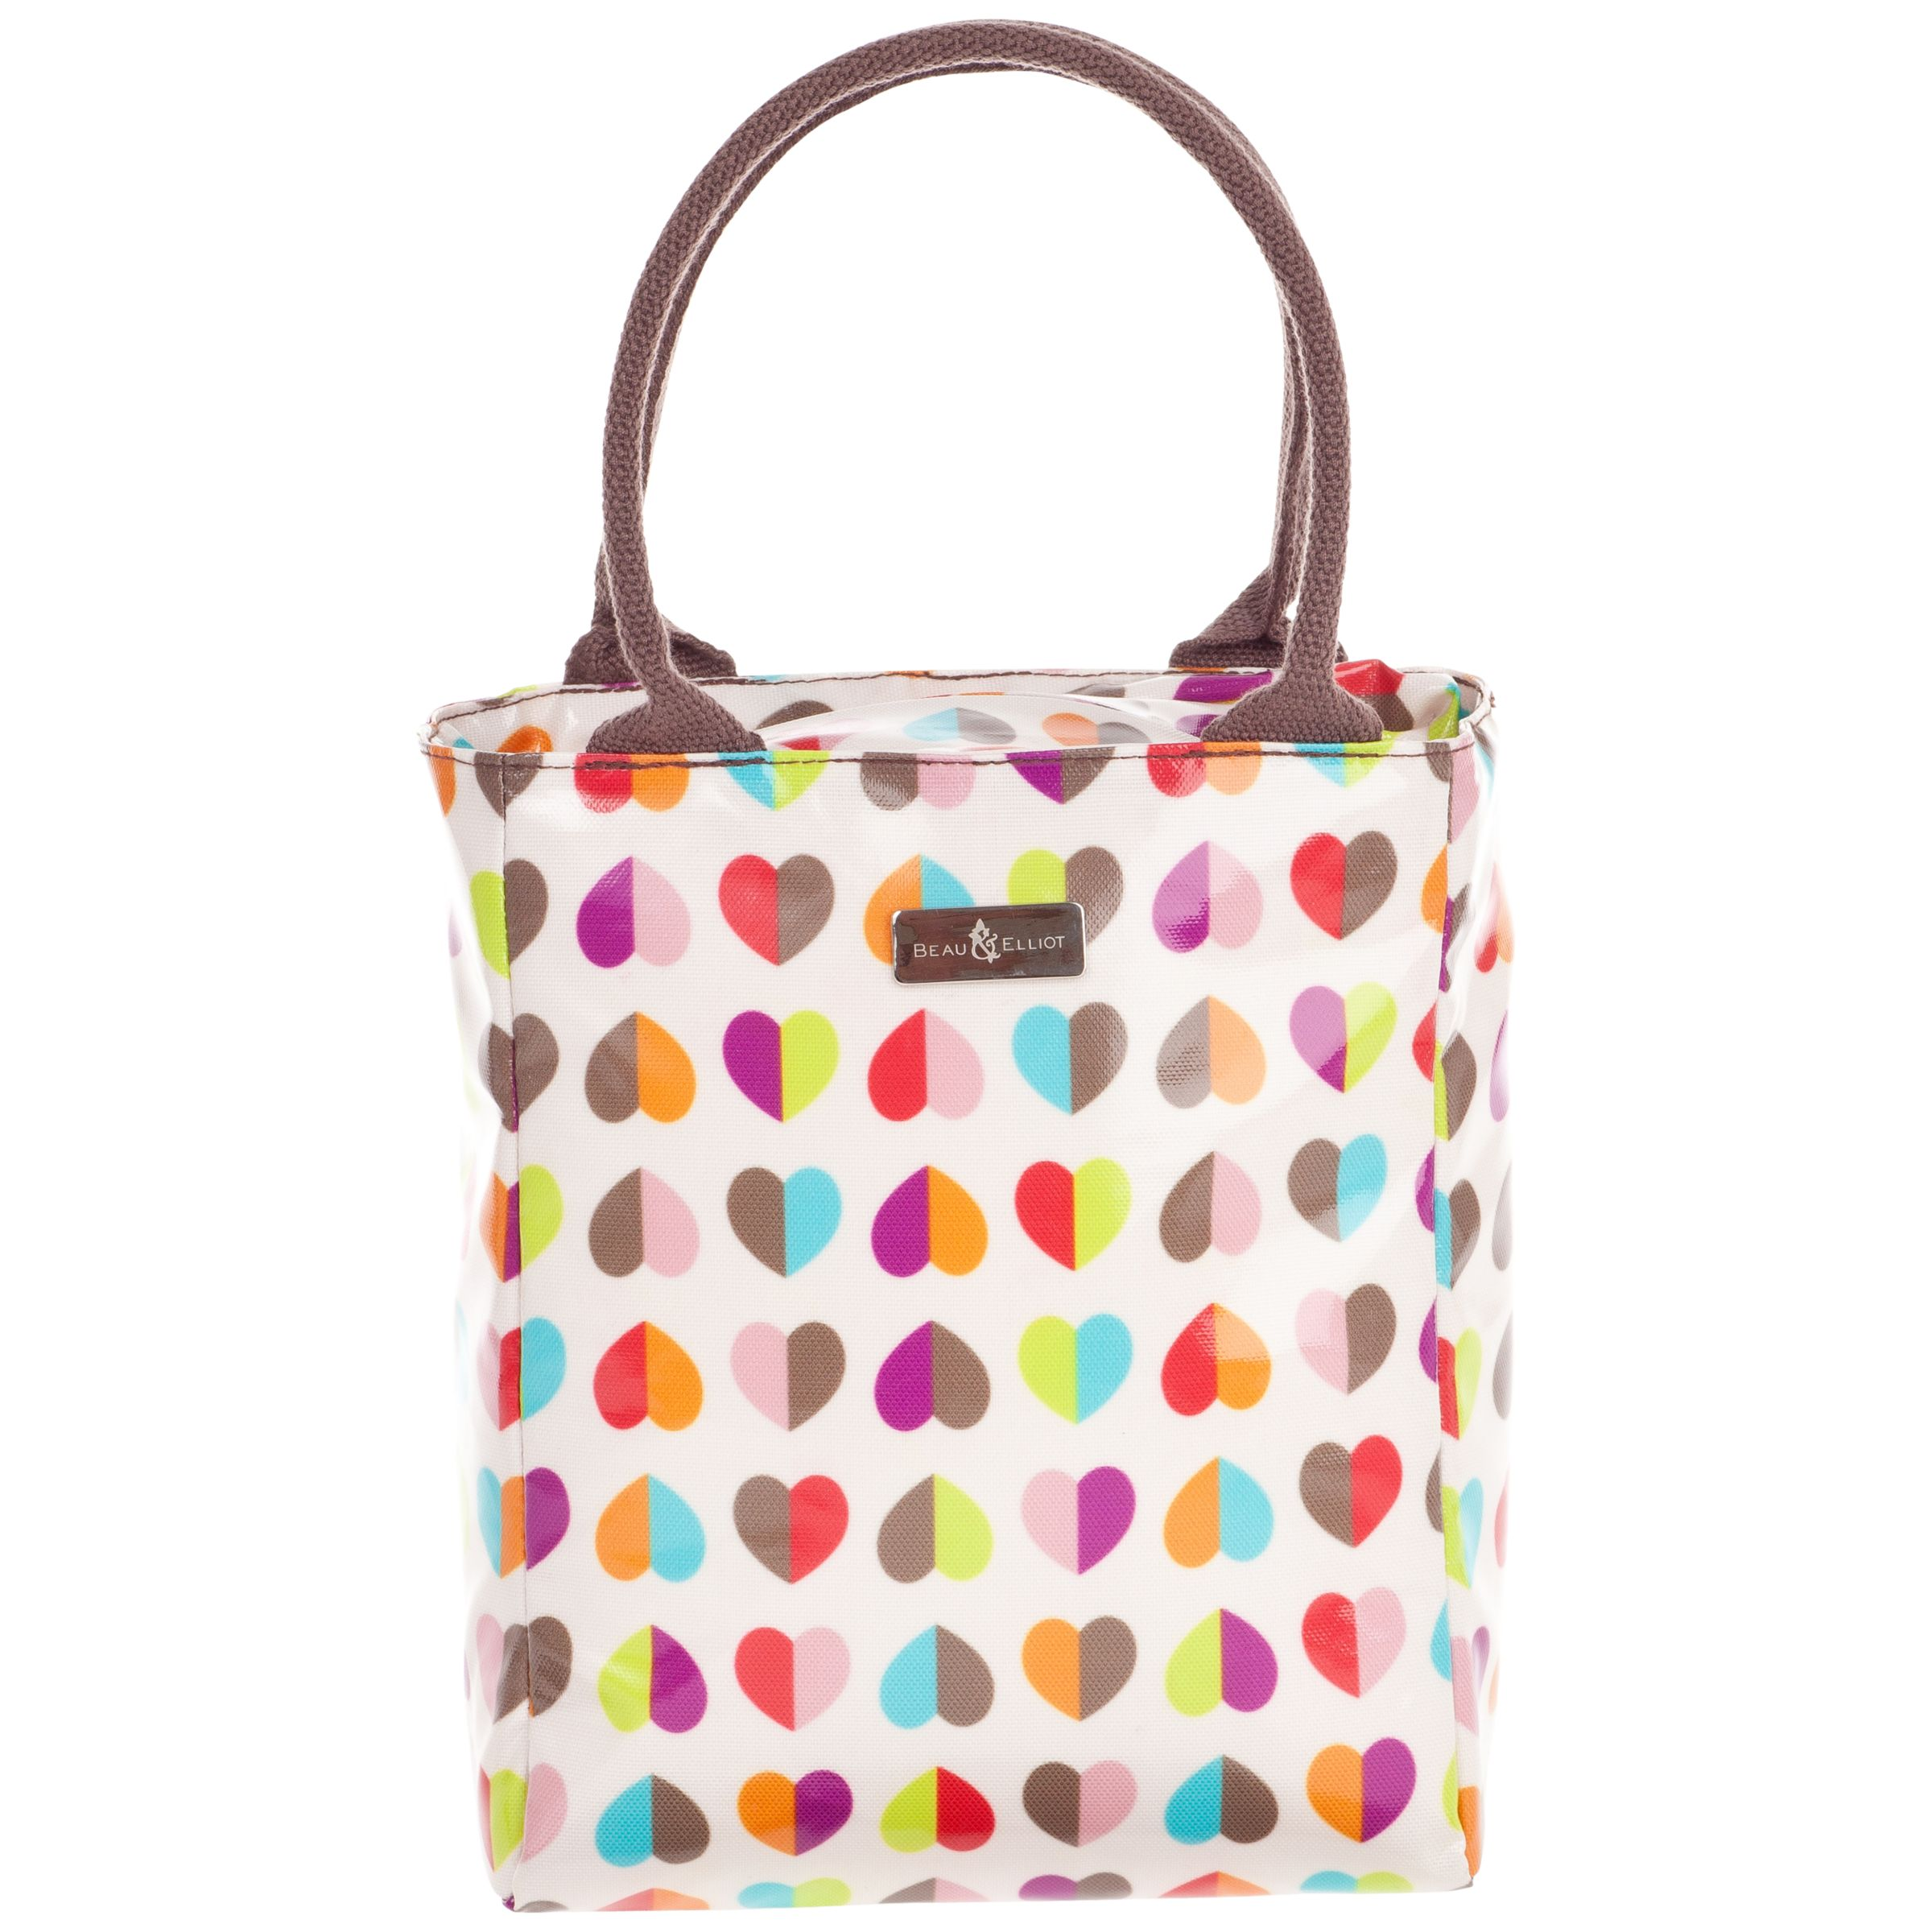 Navigate Beau and Elliot Lunch Bag